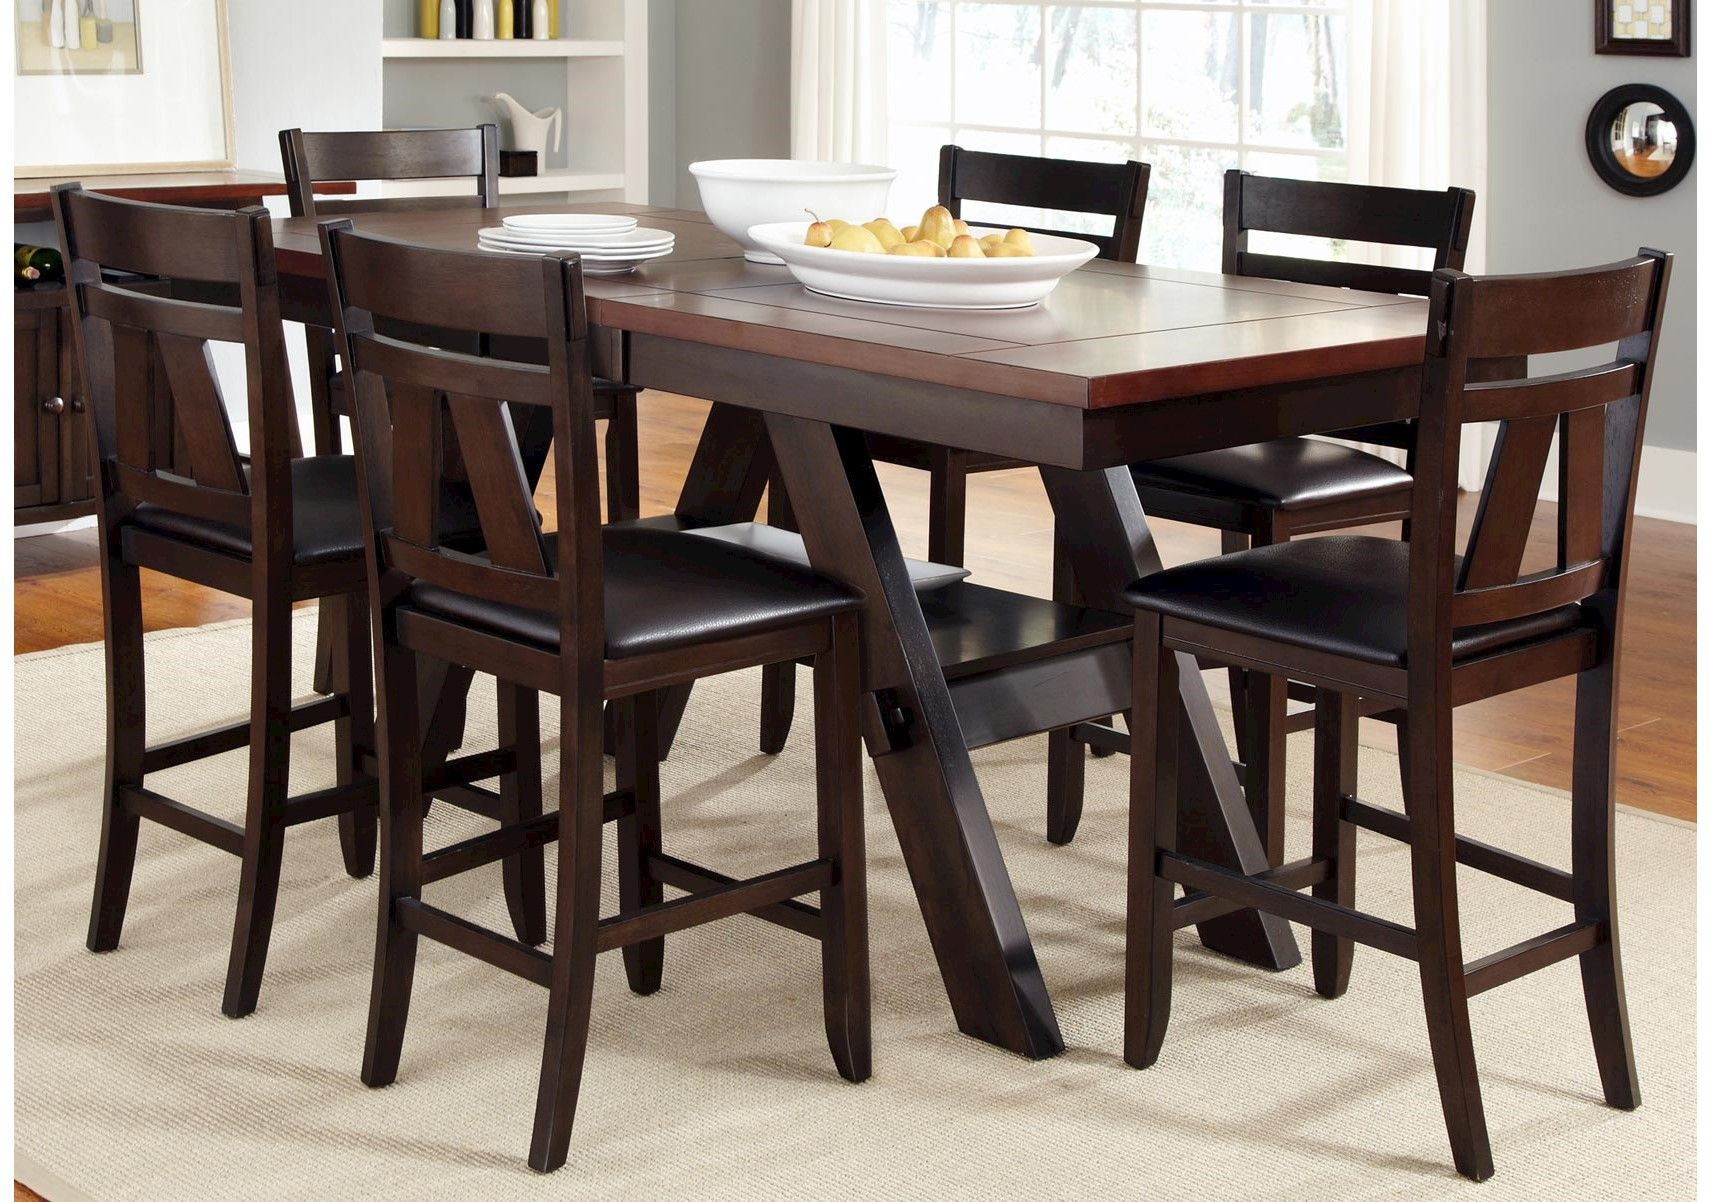 Lacks Lawson 7 Pc Counter Height Dining Set Counter Height Kitchen Table Kitchen Table Settings Liberty Furniture